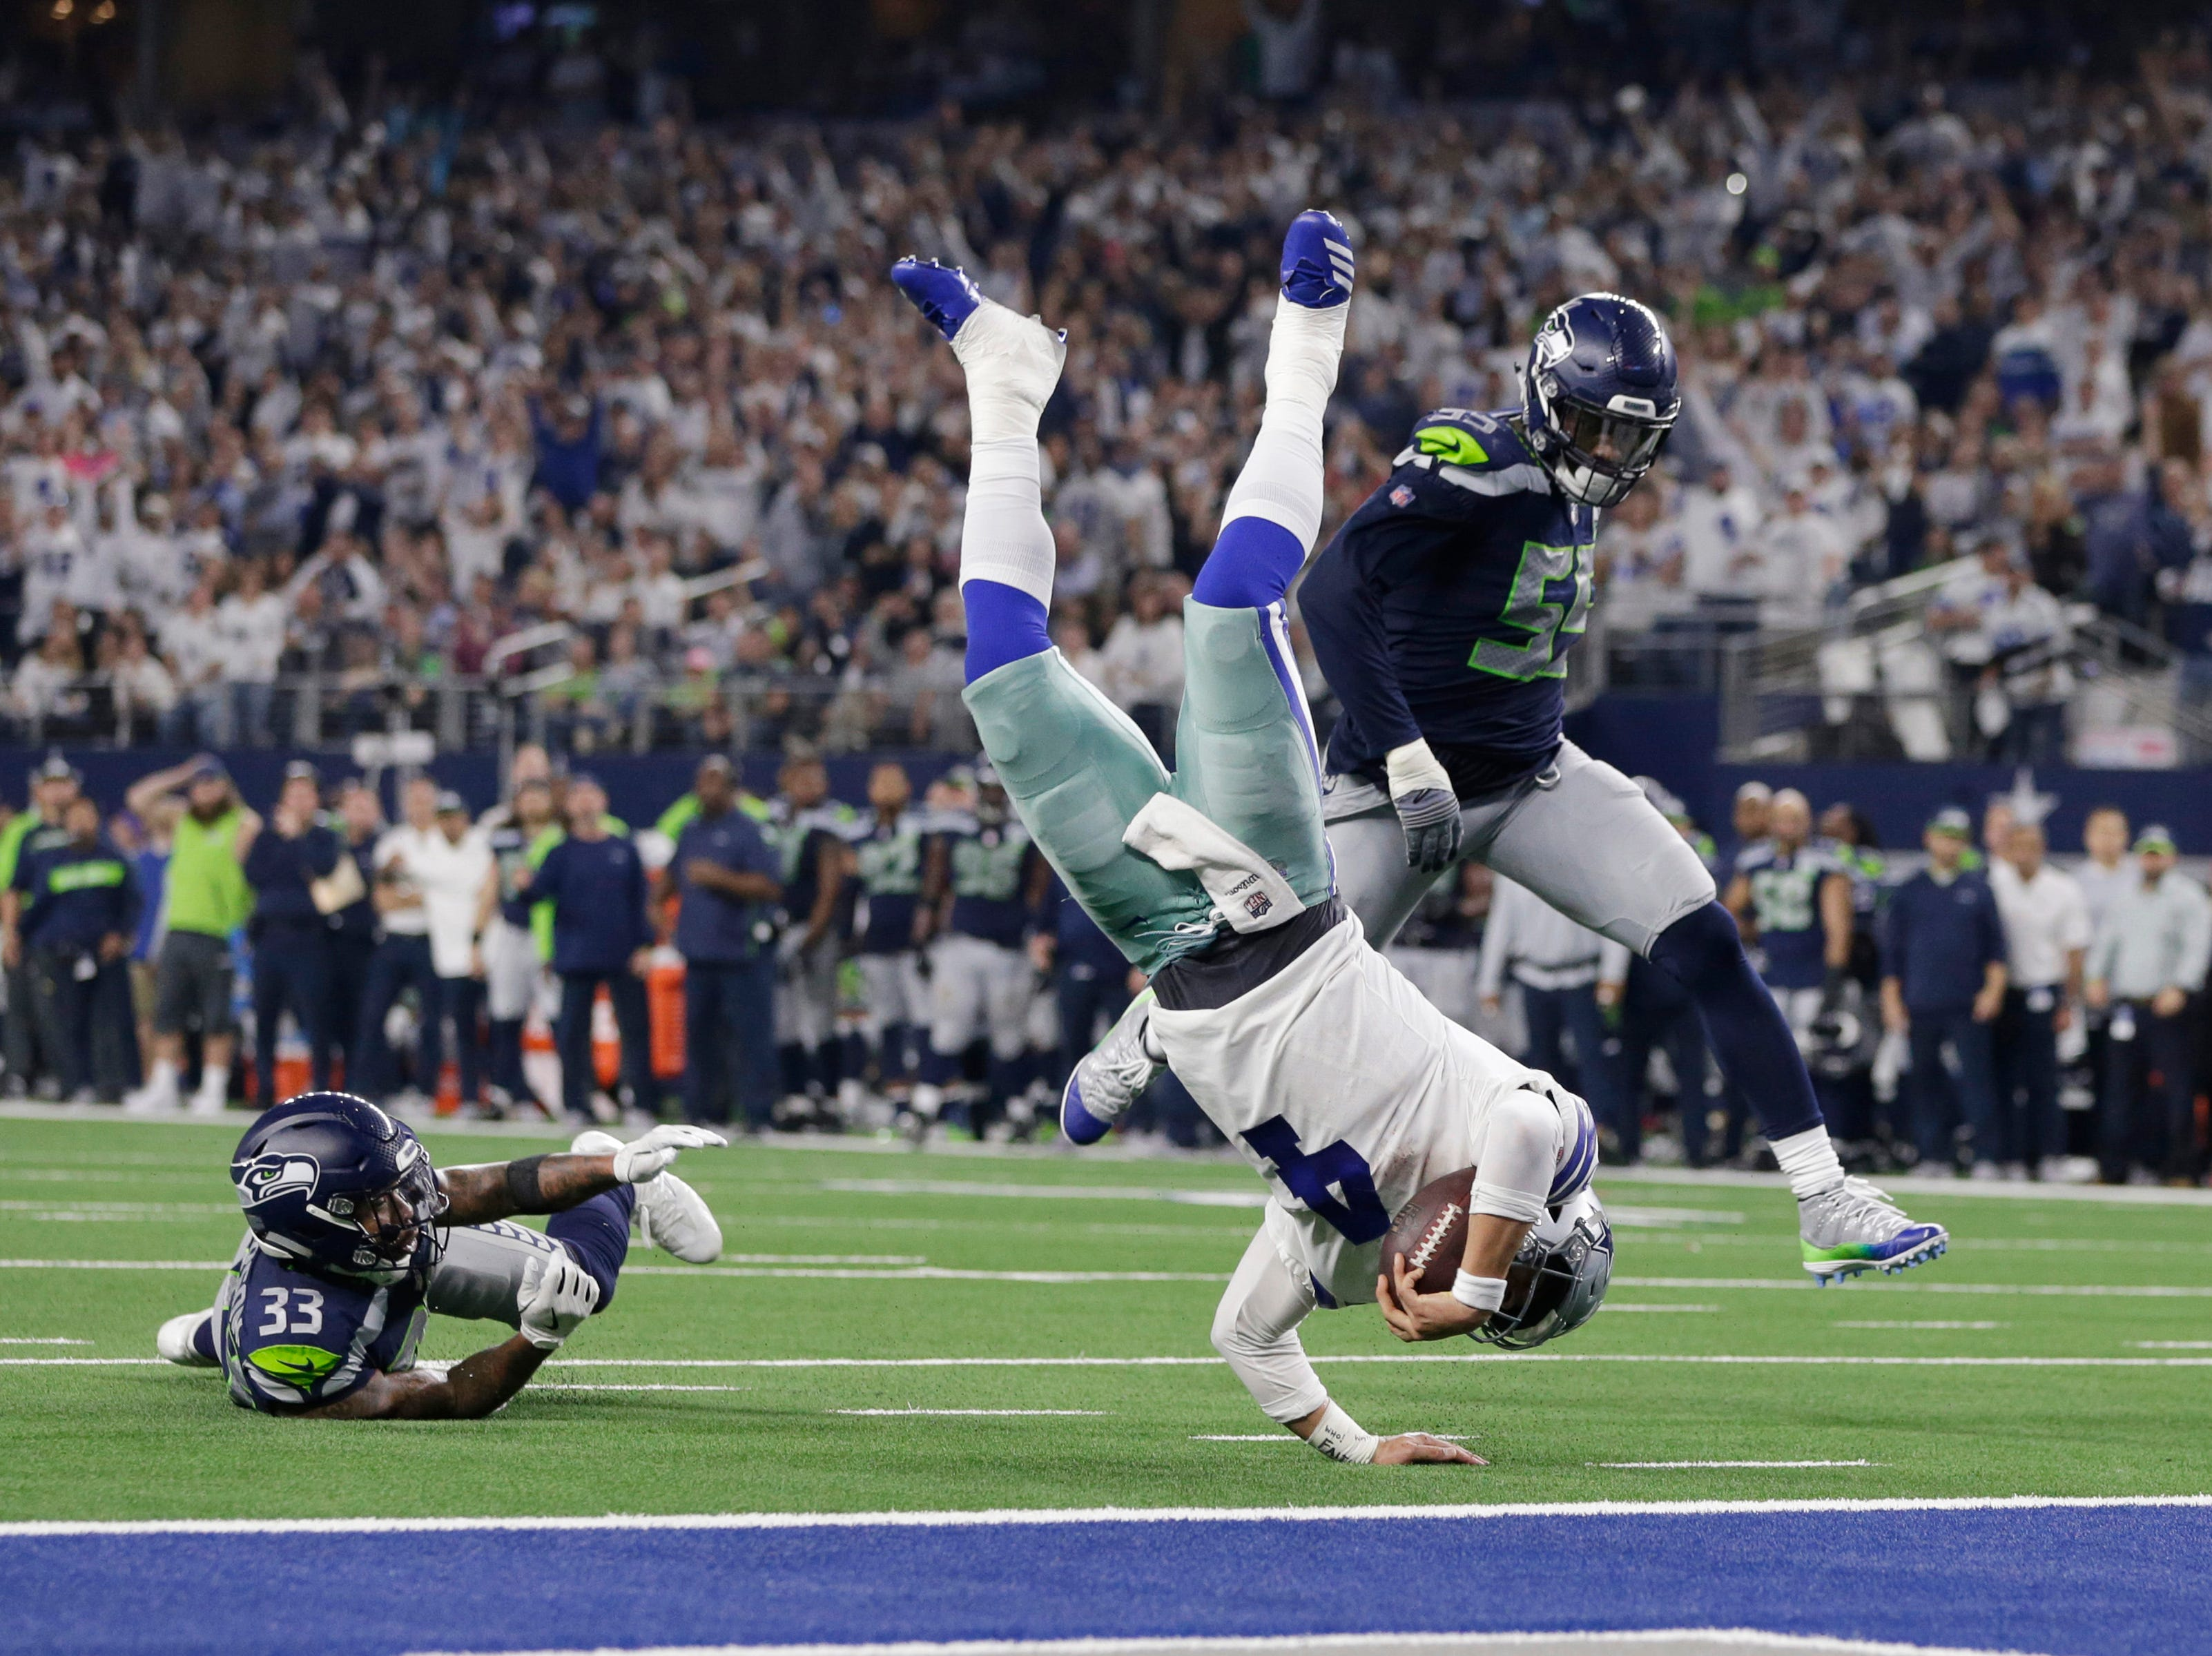 Dallas Cowboys quarterback Dak Prescott (4) is tackled at the 1-yard line by Seattle Seahawks free safety Tedric Thompson (33) in the fourth quarter at AT&T Stadium.